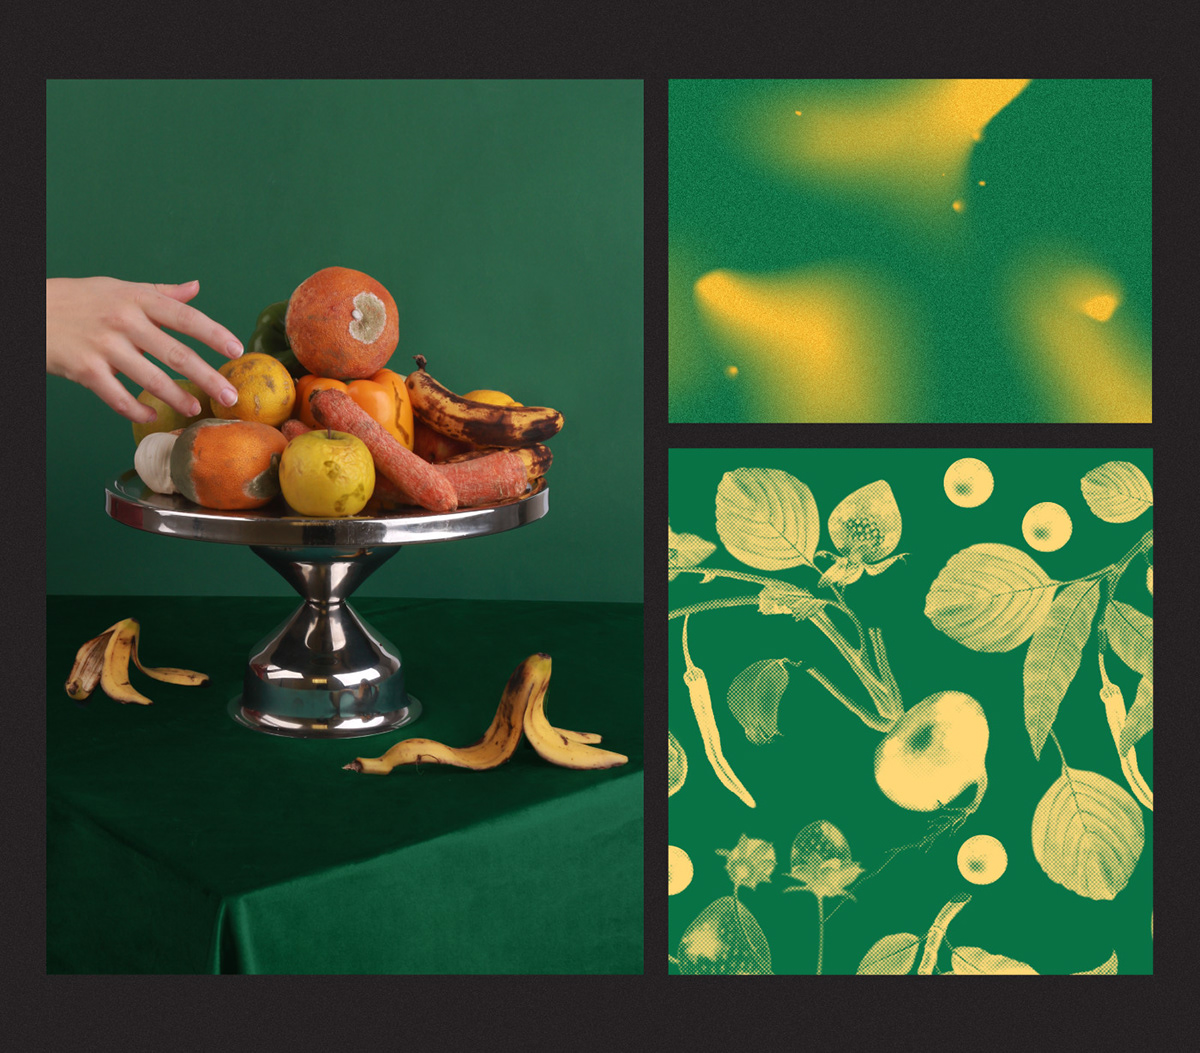 hellmanns D&AD adobeawards Food waste airbnb Spoiled rotten Photography  Lumpy fruit sinking good